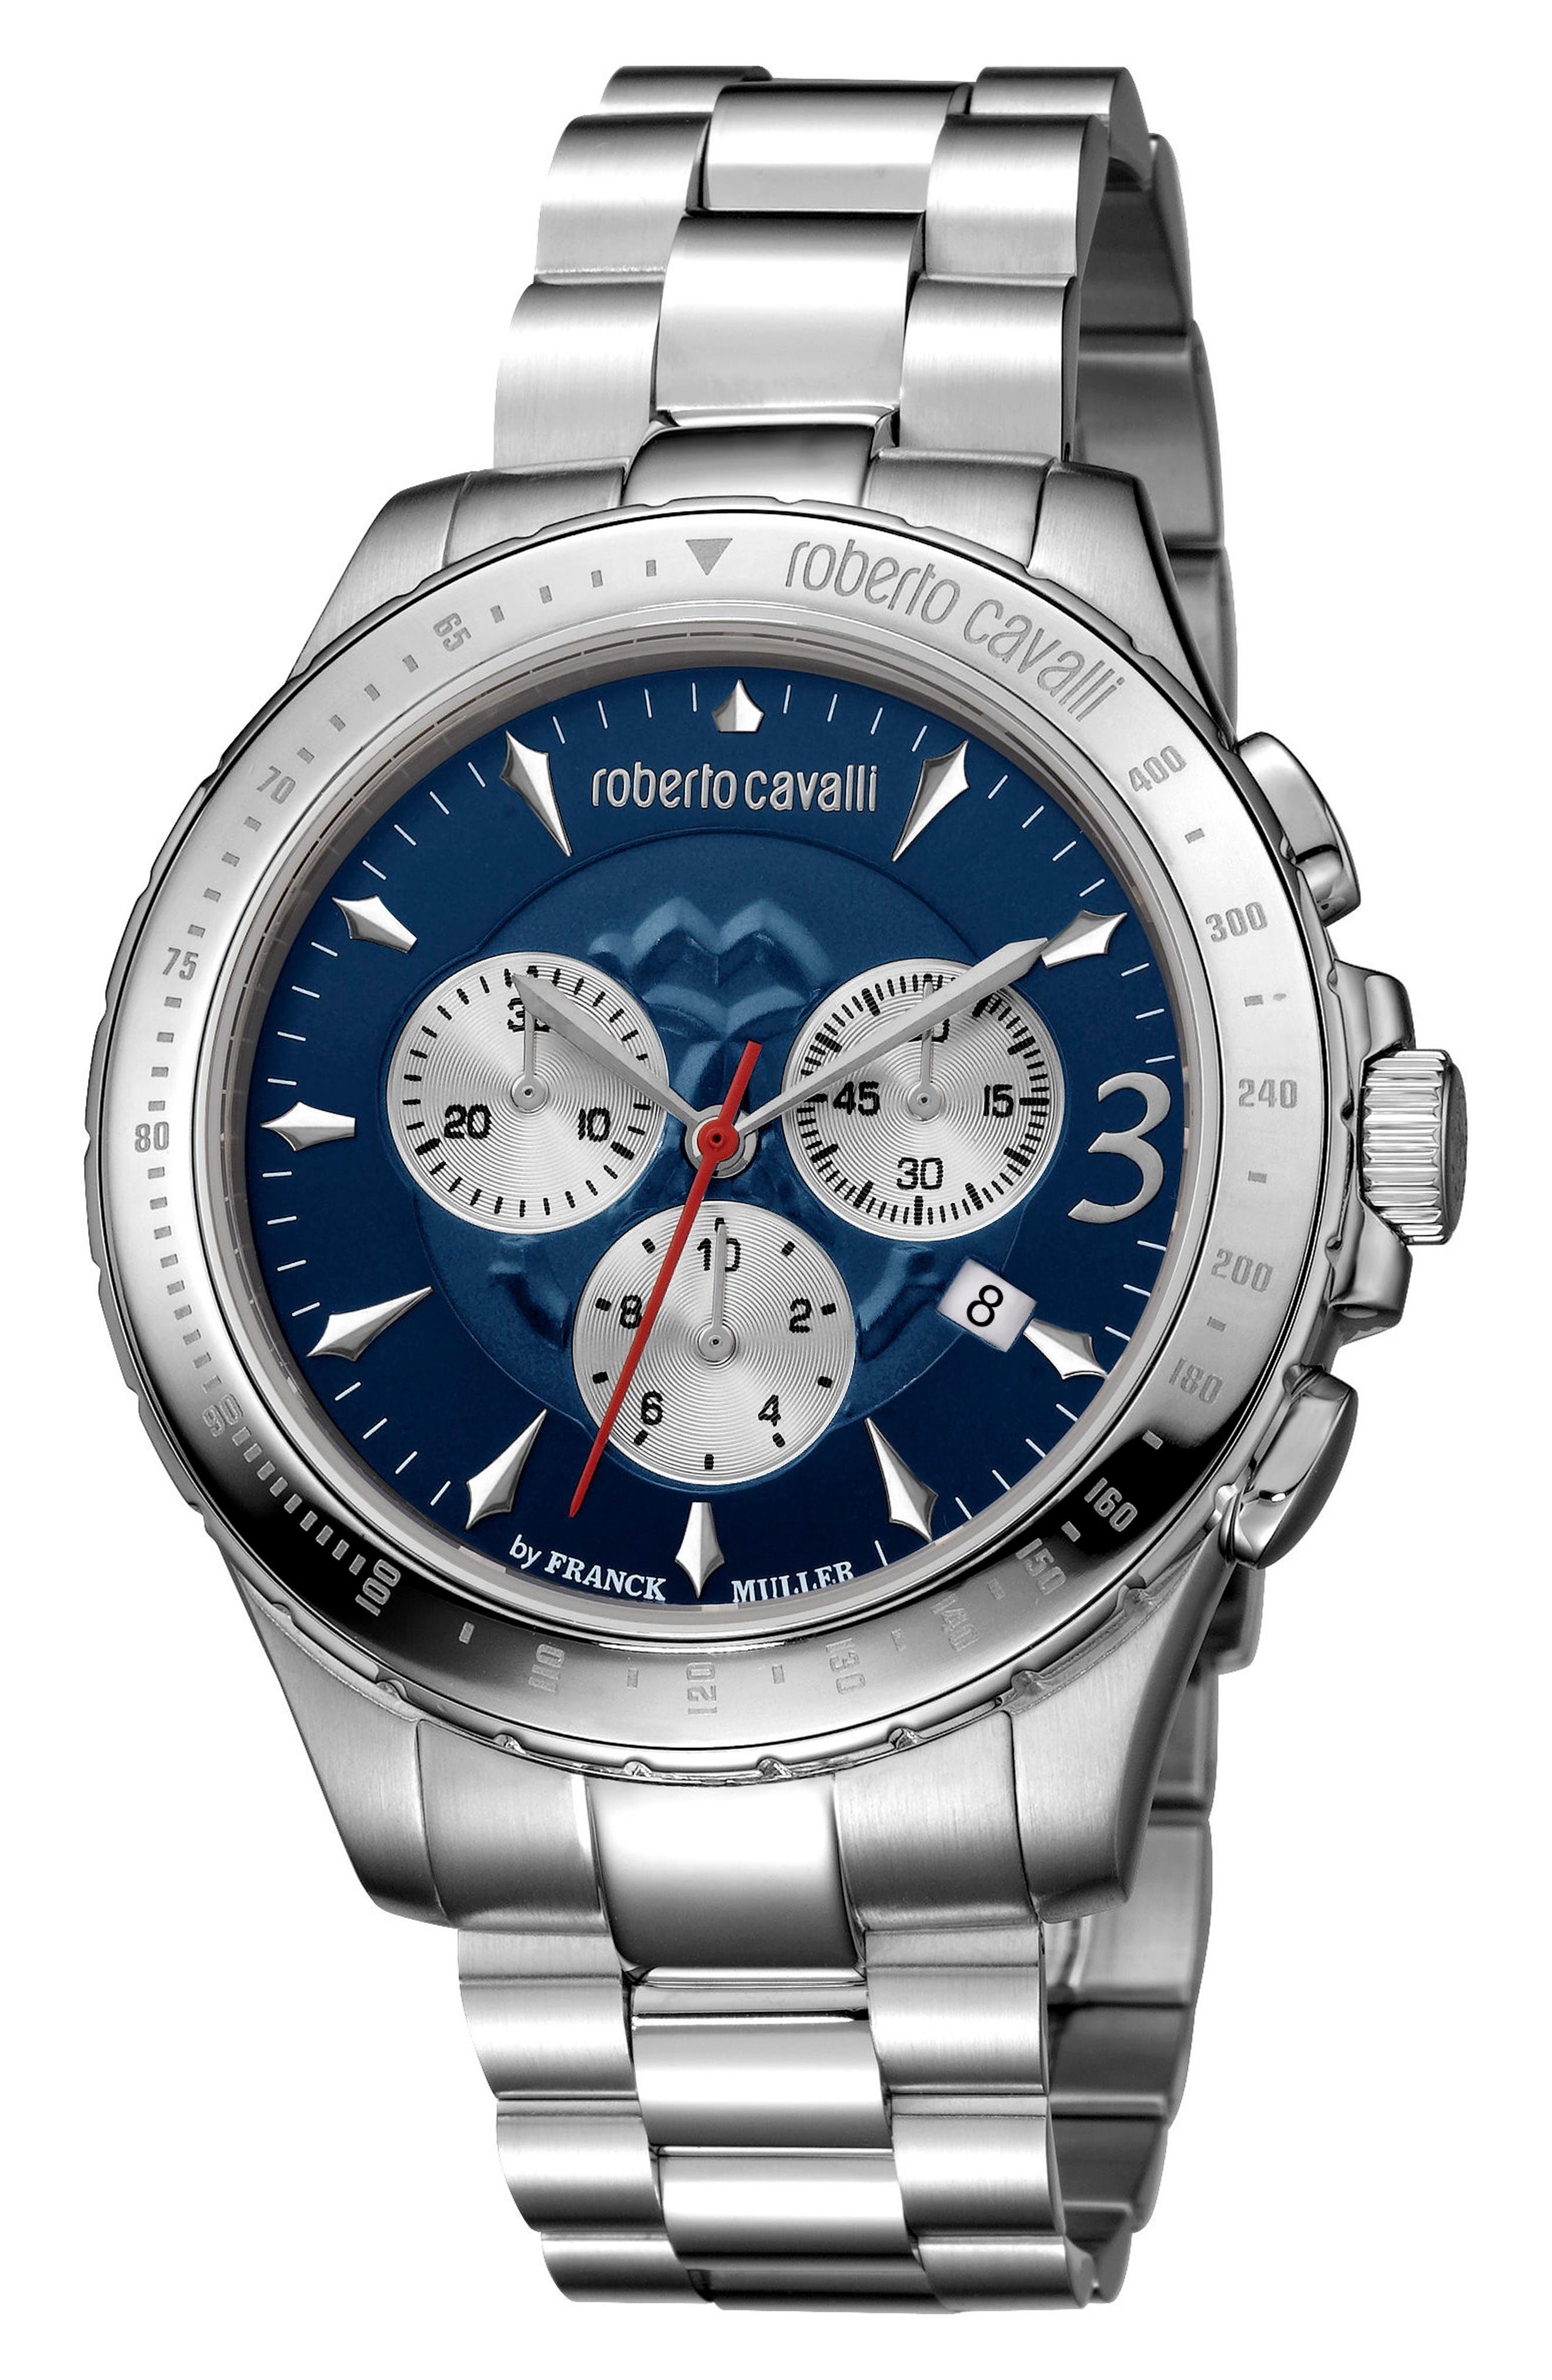 Main Image - Roberto Cavalli by Franck Muller Chronograph Bracelet Watch, 43mm